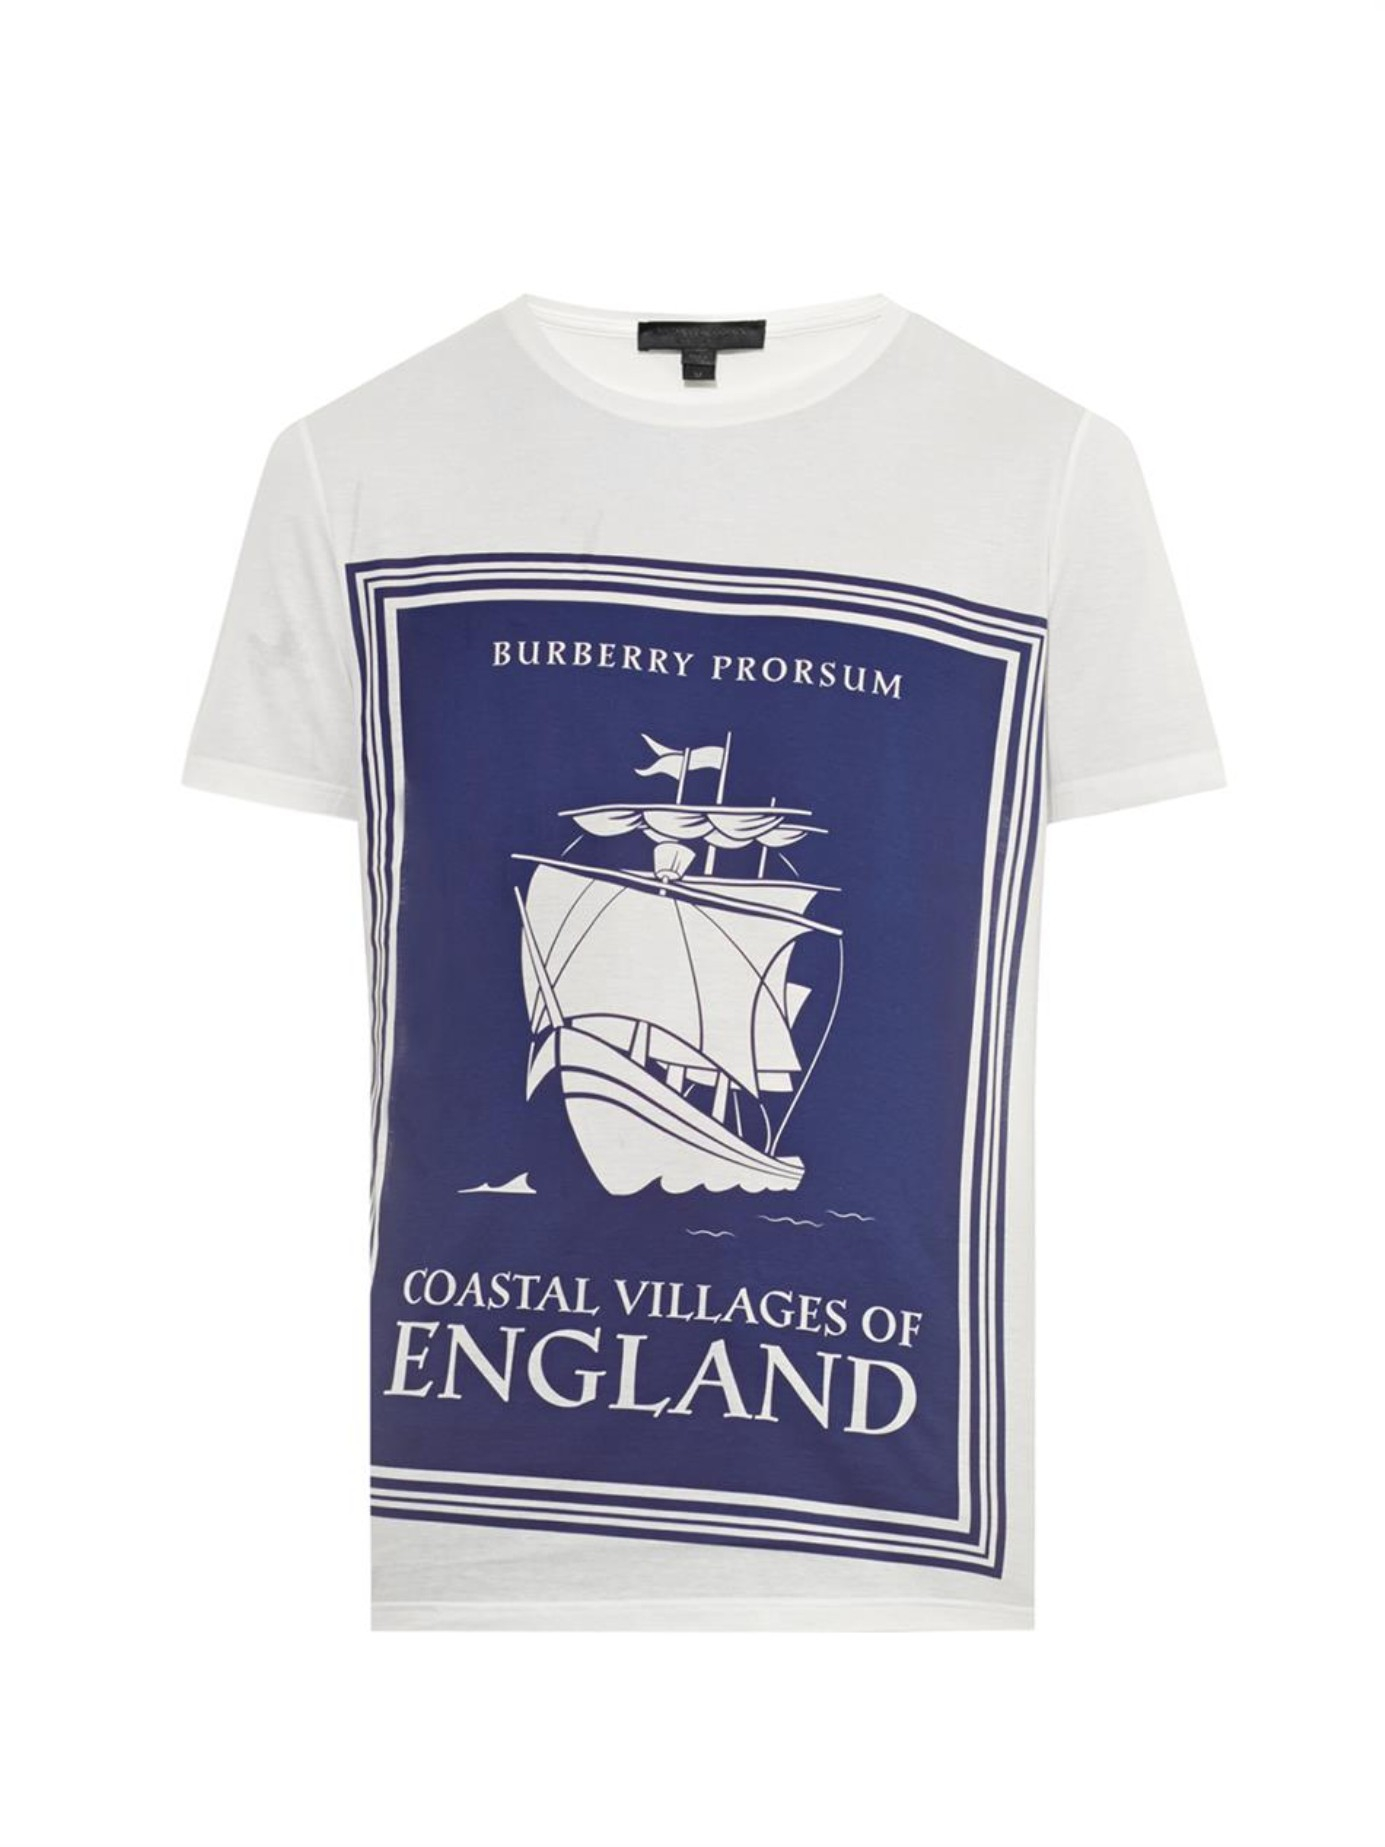 Book Cover White Jeans : Burberry prorsum book cover print cotton t shirt in white